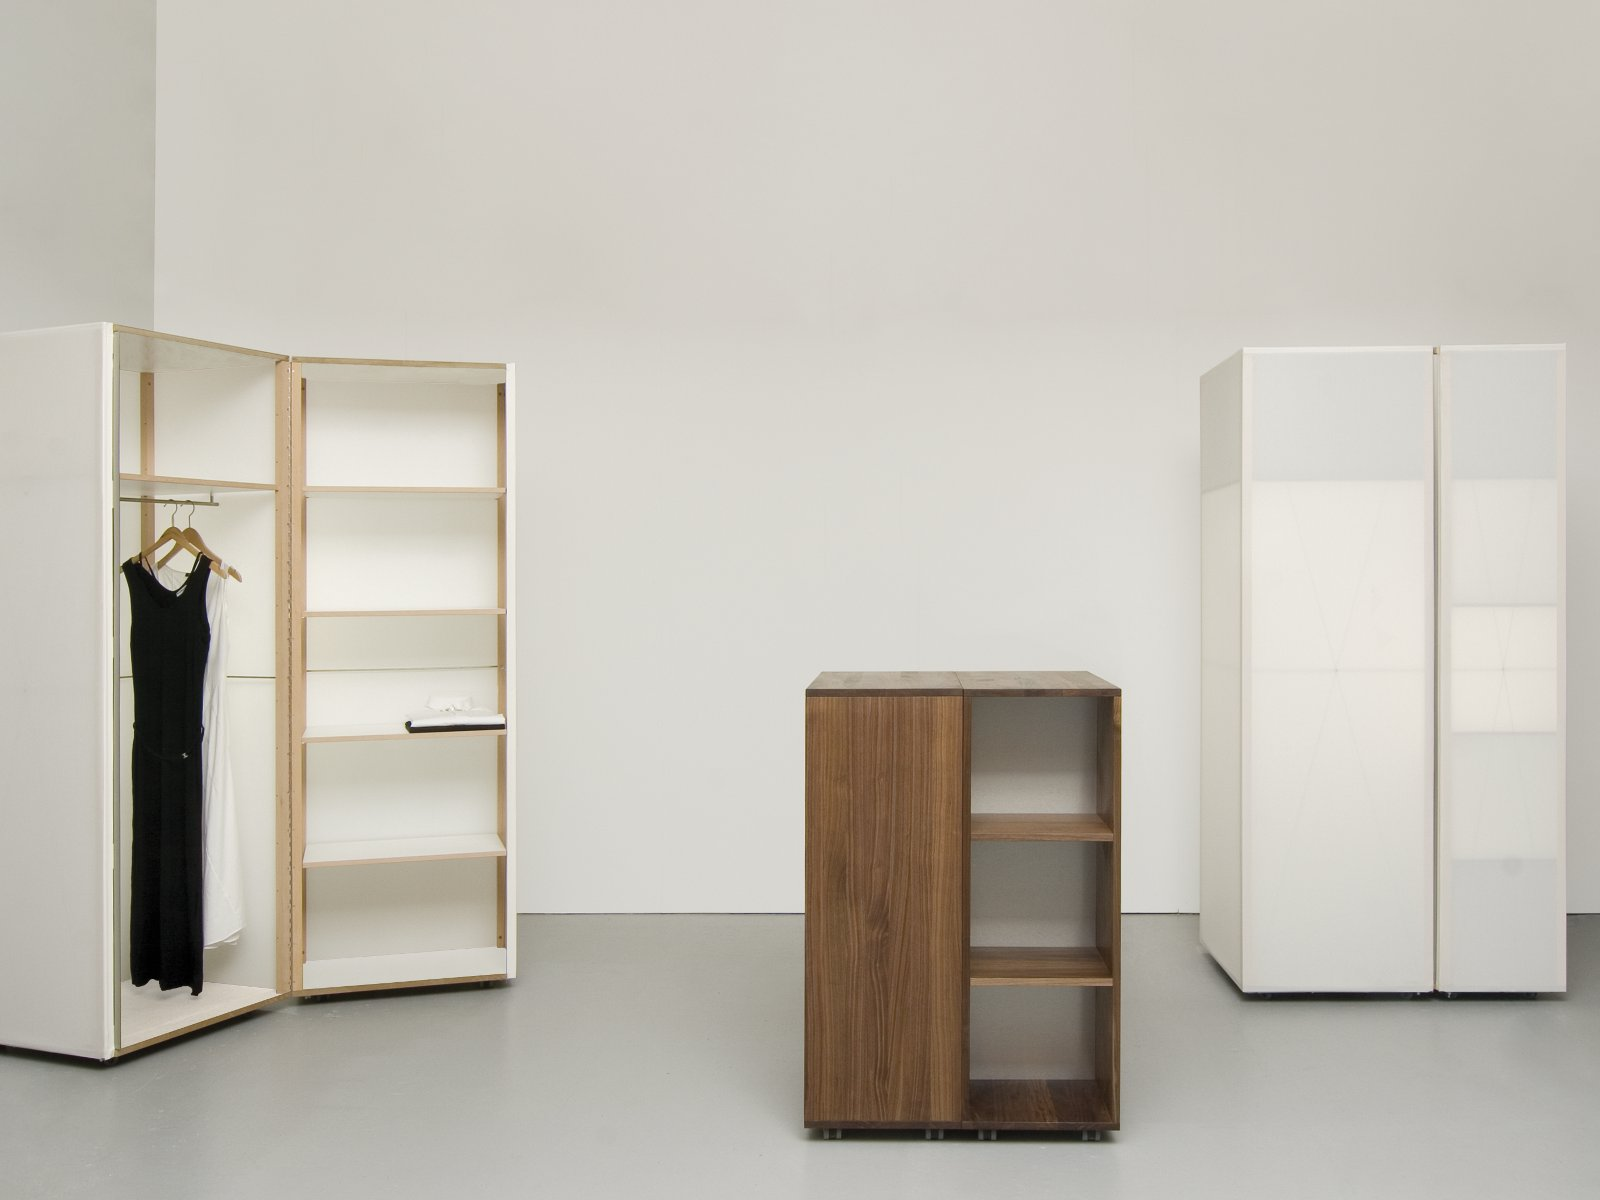 quartier kleiderschrank by sanktjohanser design matthias hubert sanktjohanser. Black Bedroom Furniture Sets. Home Design Ideas